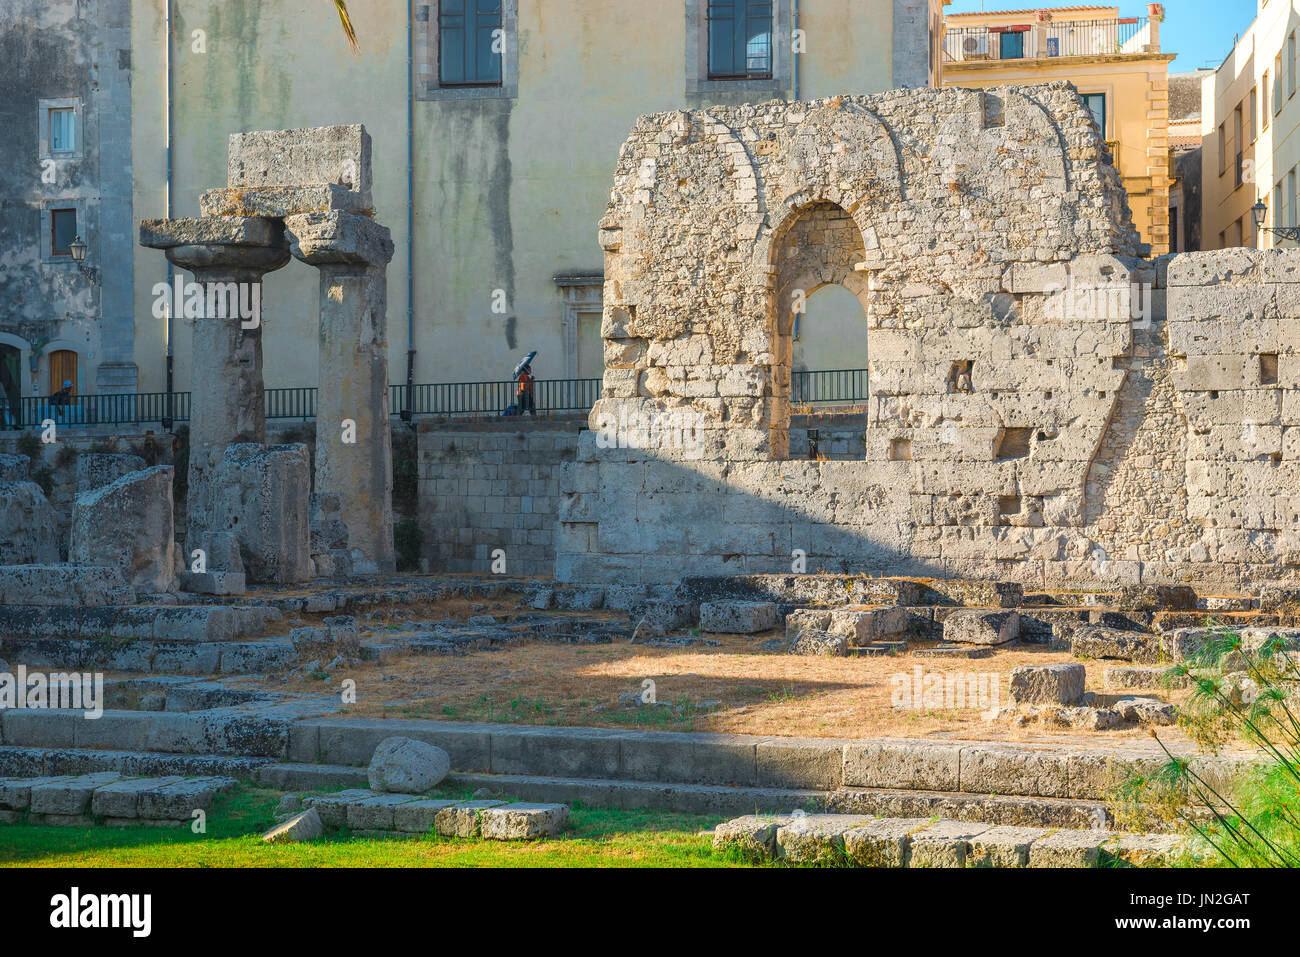 Ortigia Sicily Greek ruins, the ruined ancient Greek temple of Apollo on Ortigia Island, Syracuse,Sicily. - Stock Image